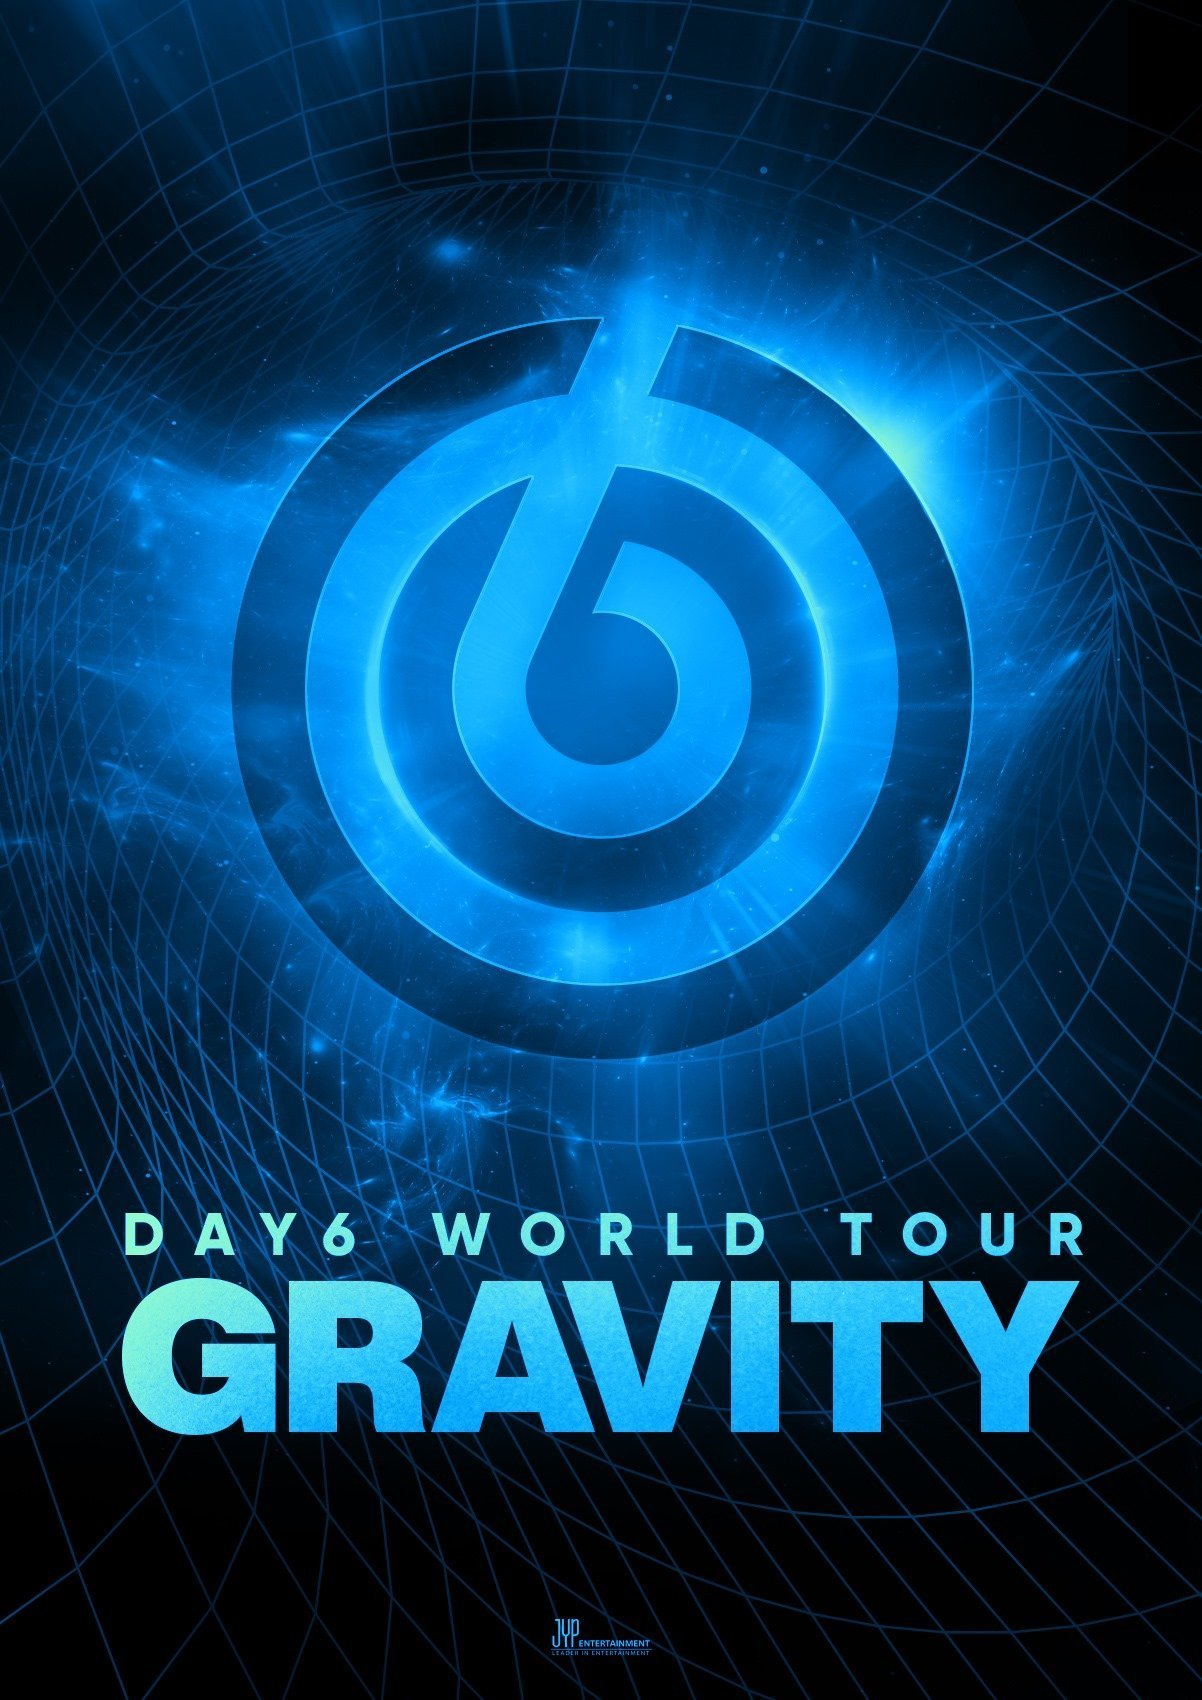 DAY6 Reveals Cities & Dates for Their 'GRAVITY' World Tour